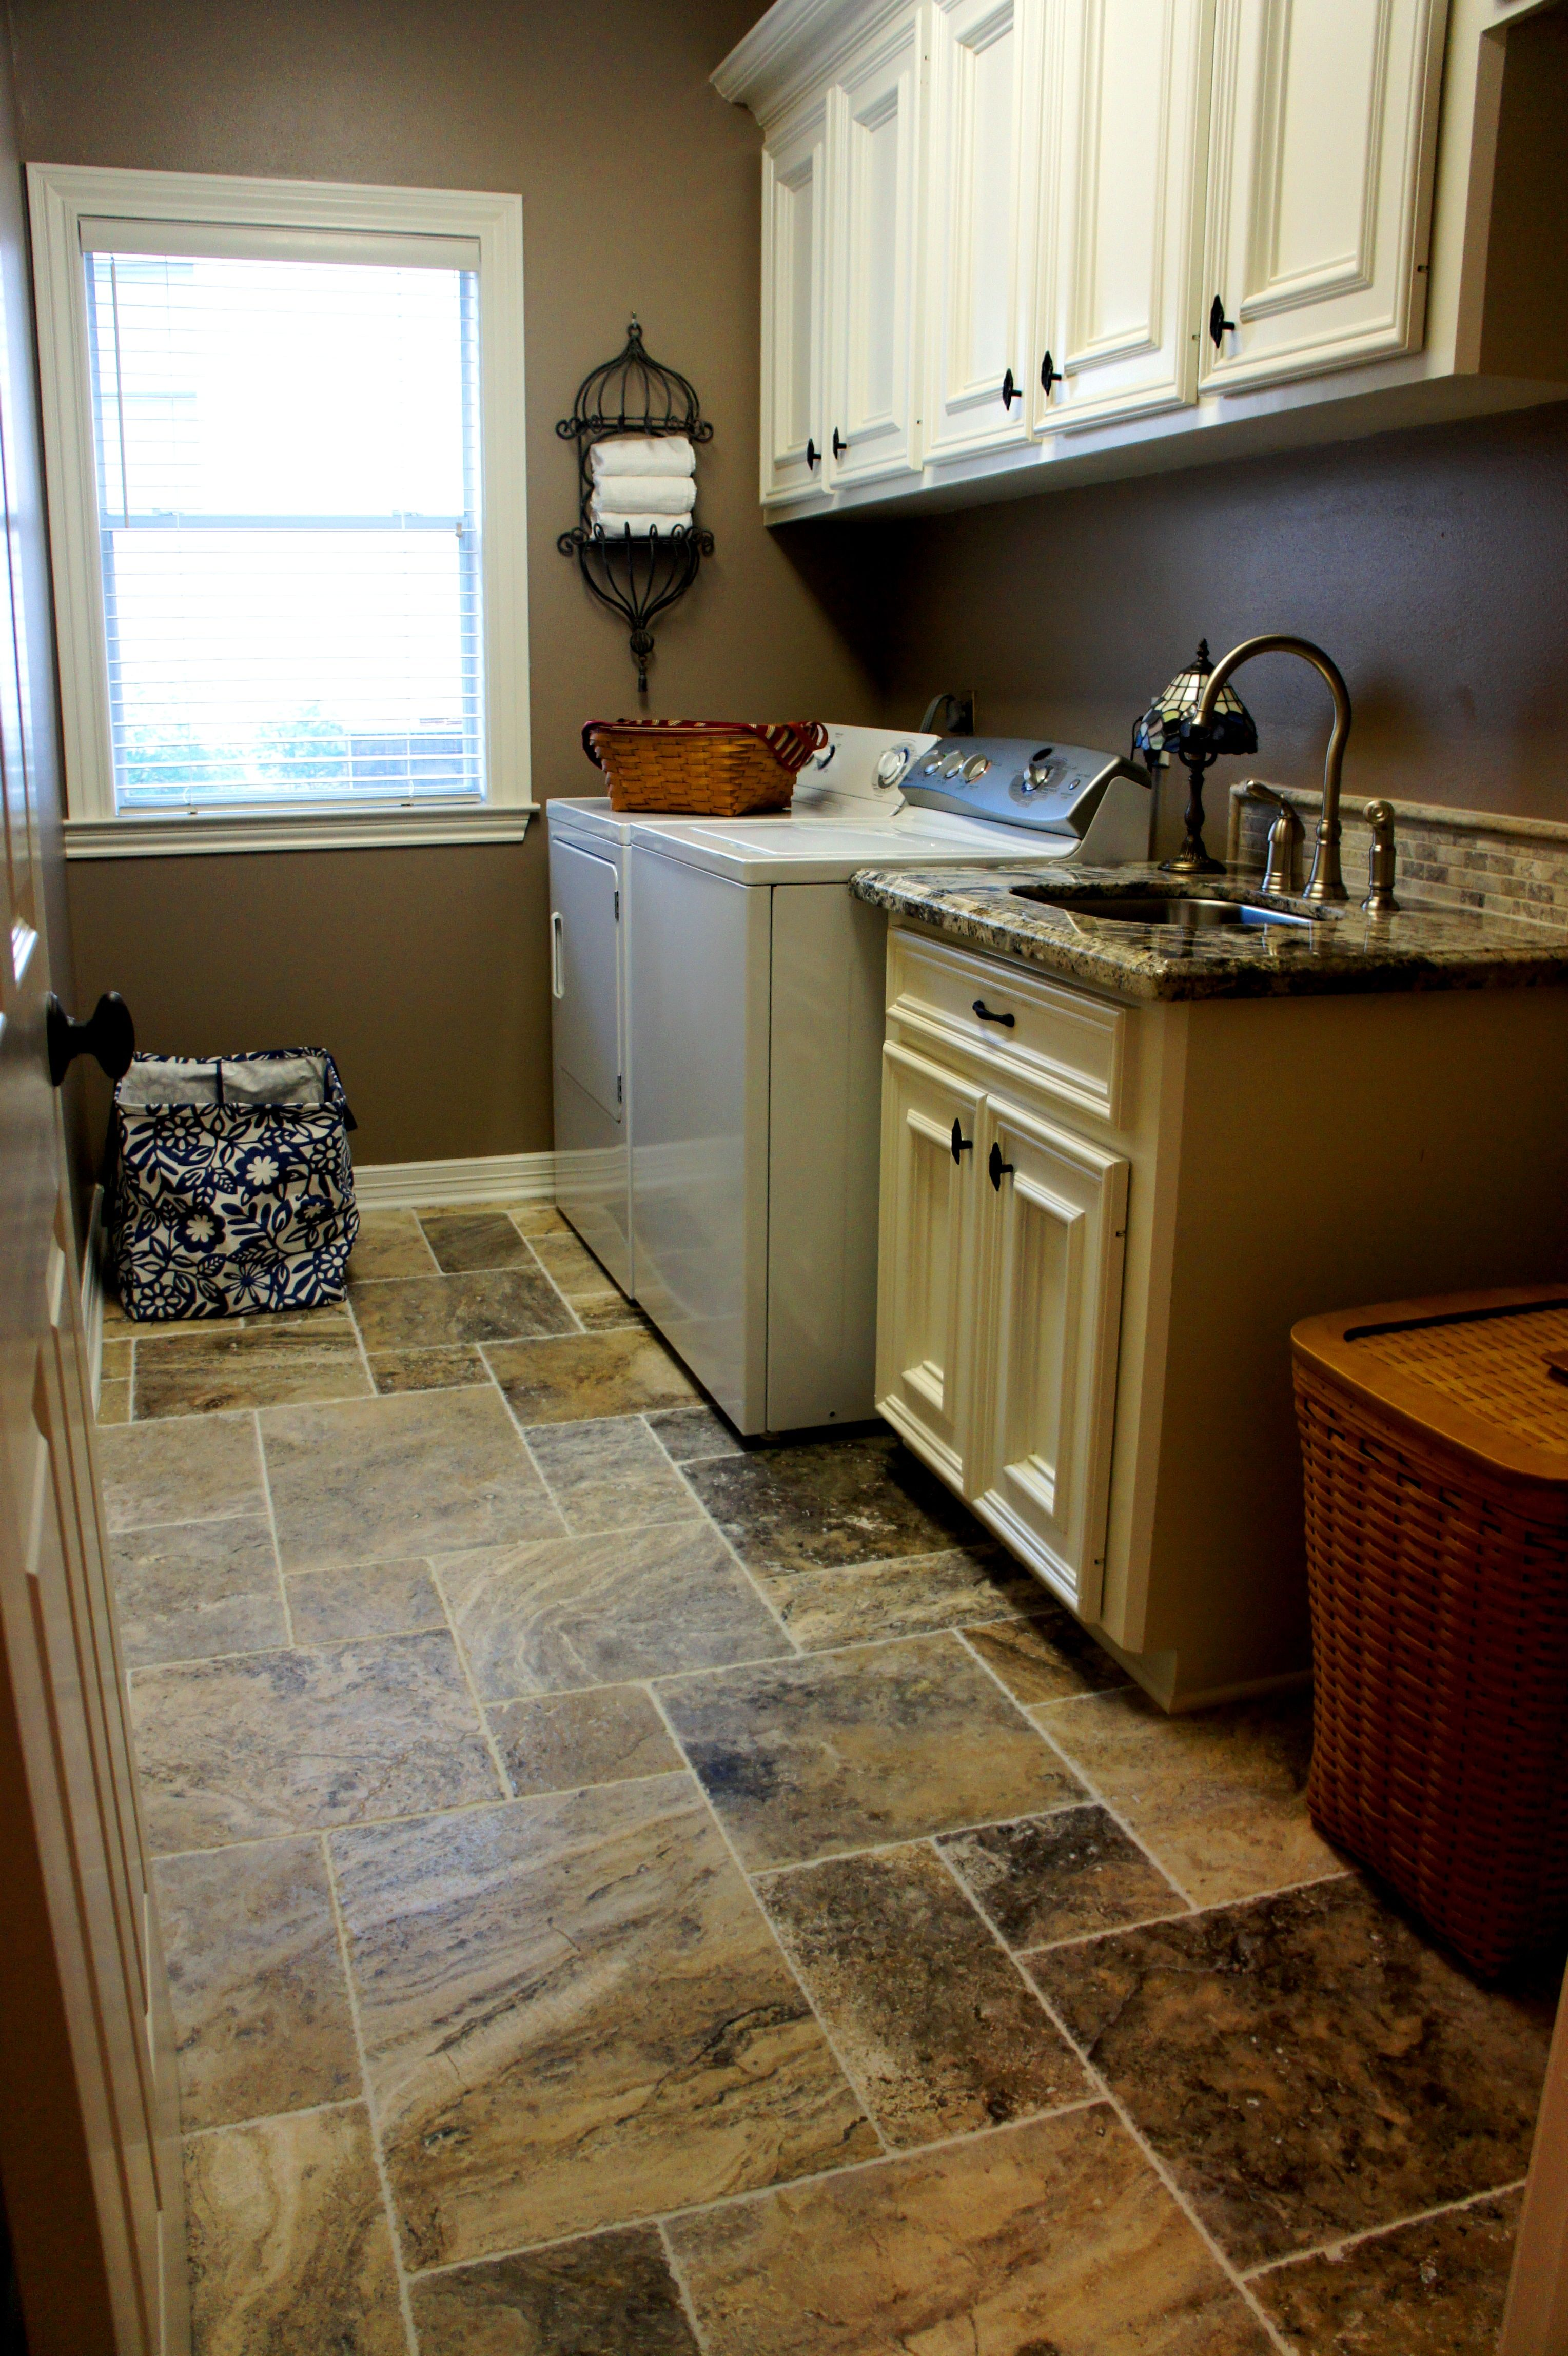 Laudry room remodeling ideas travertine tile color silver french laudry room remodeling ideas travertine tile color silver french pattern love this floor for my laundry room and bathroom dailygadgetfo Gallery